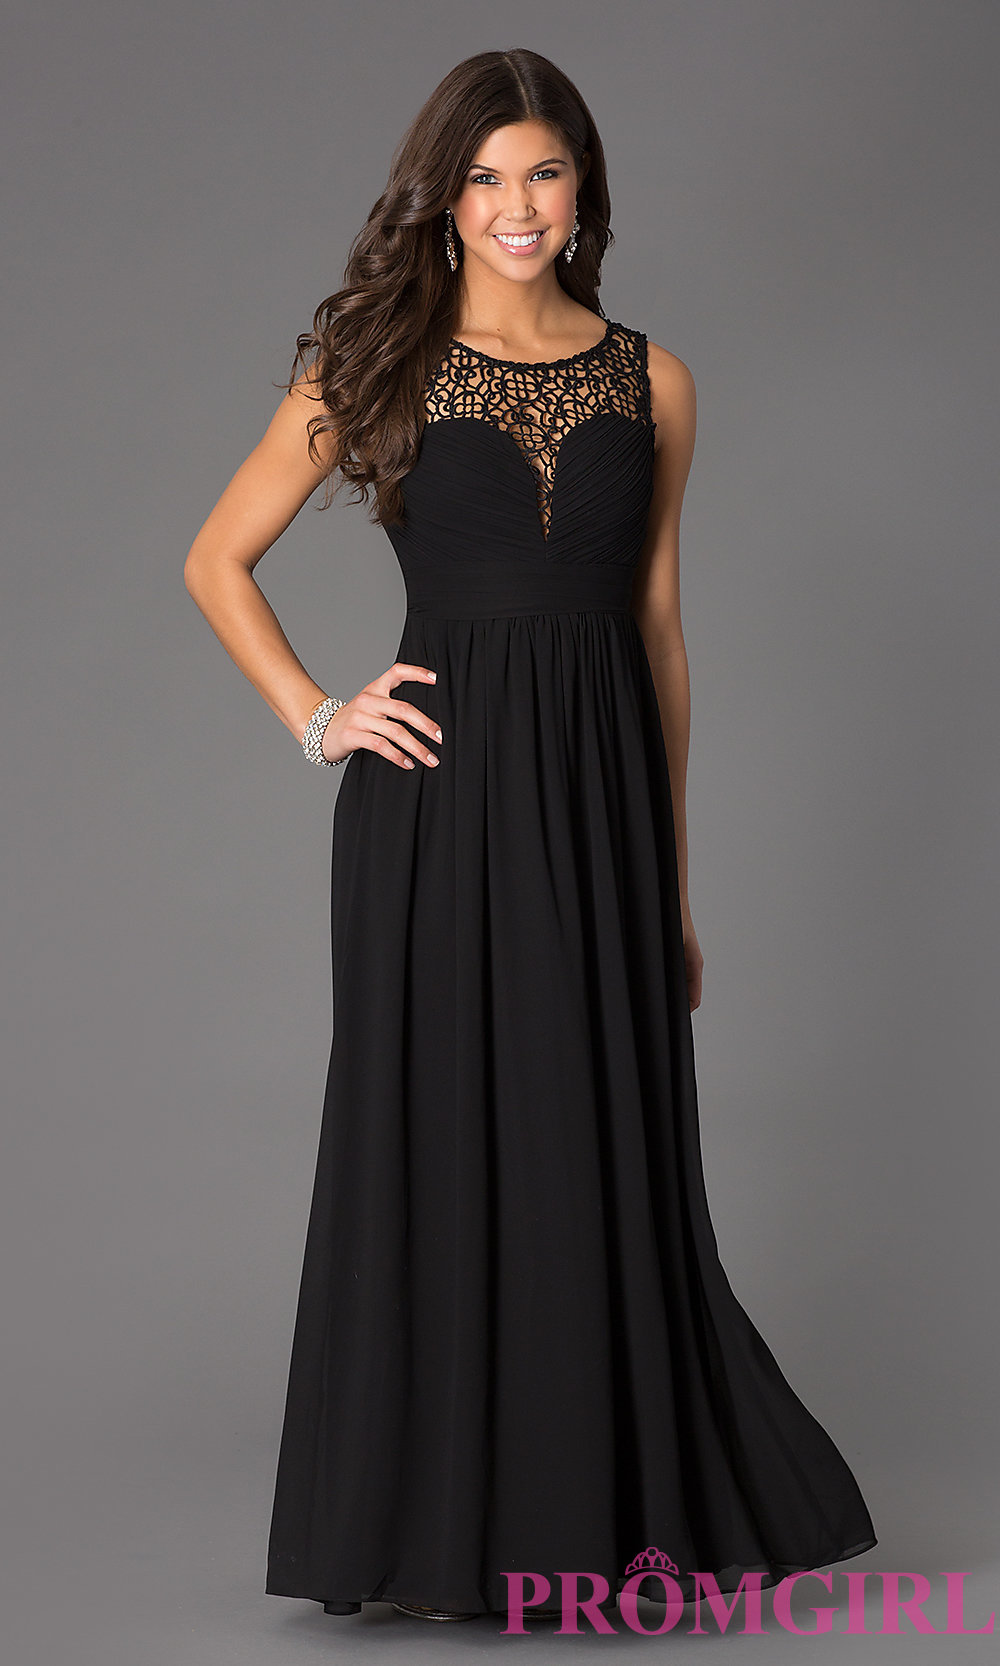 Black Sequin Floor Length Dress How To Get Attention Dresses Ask